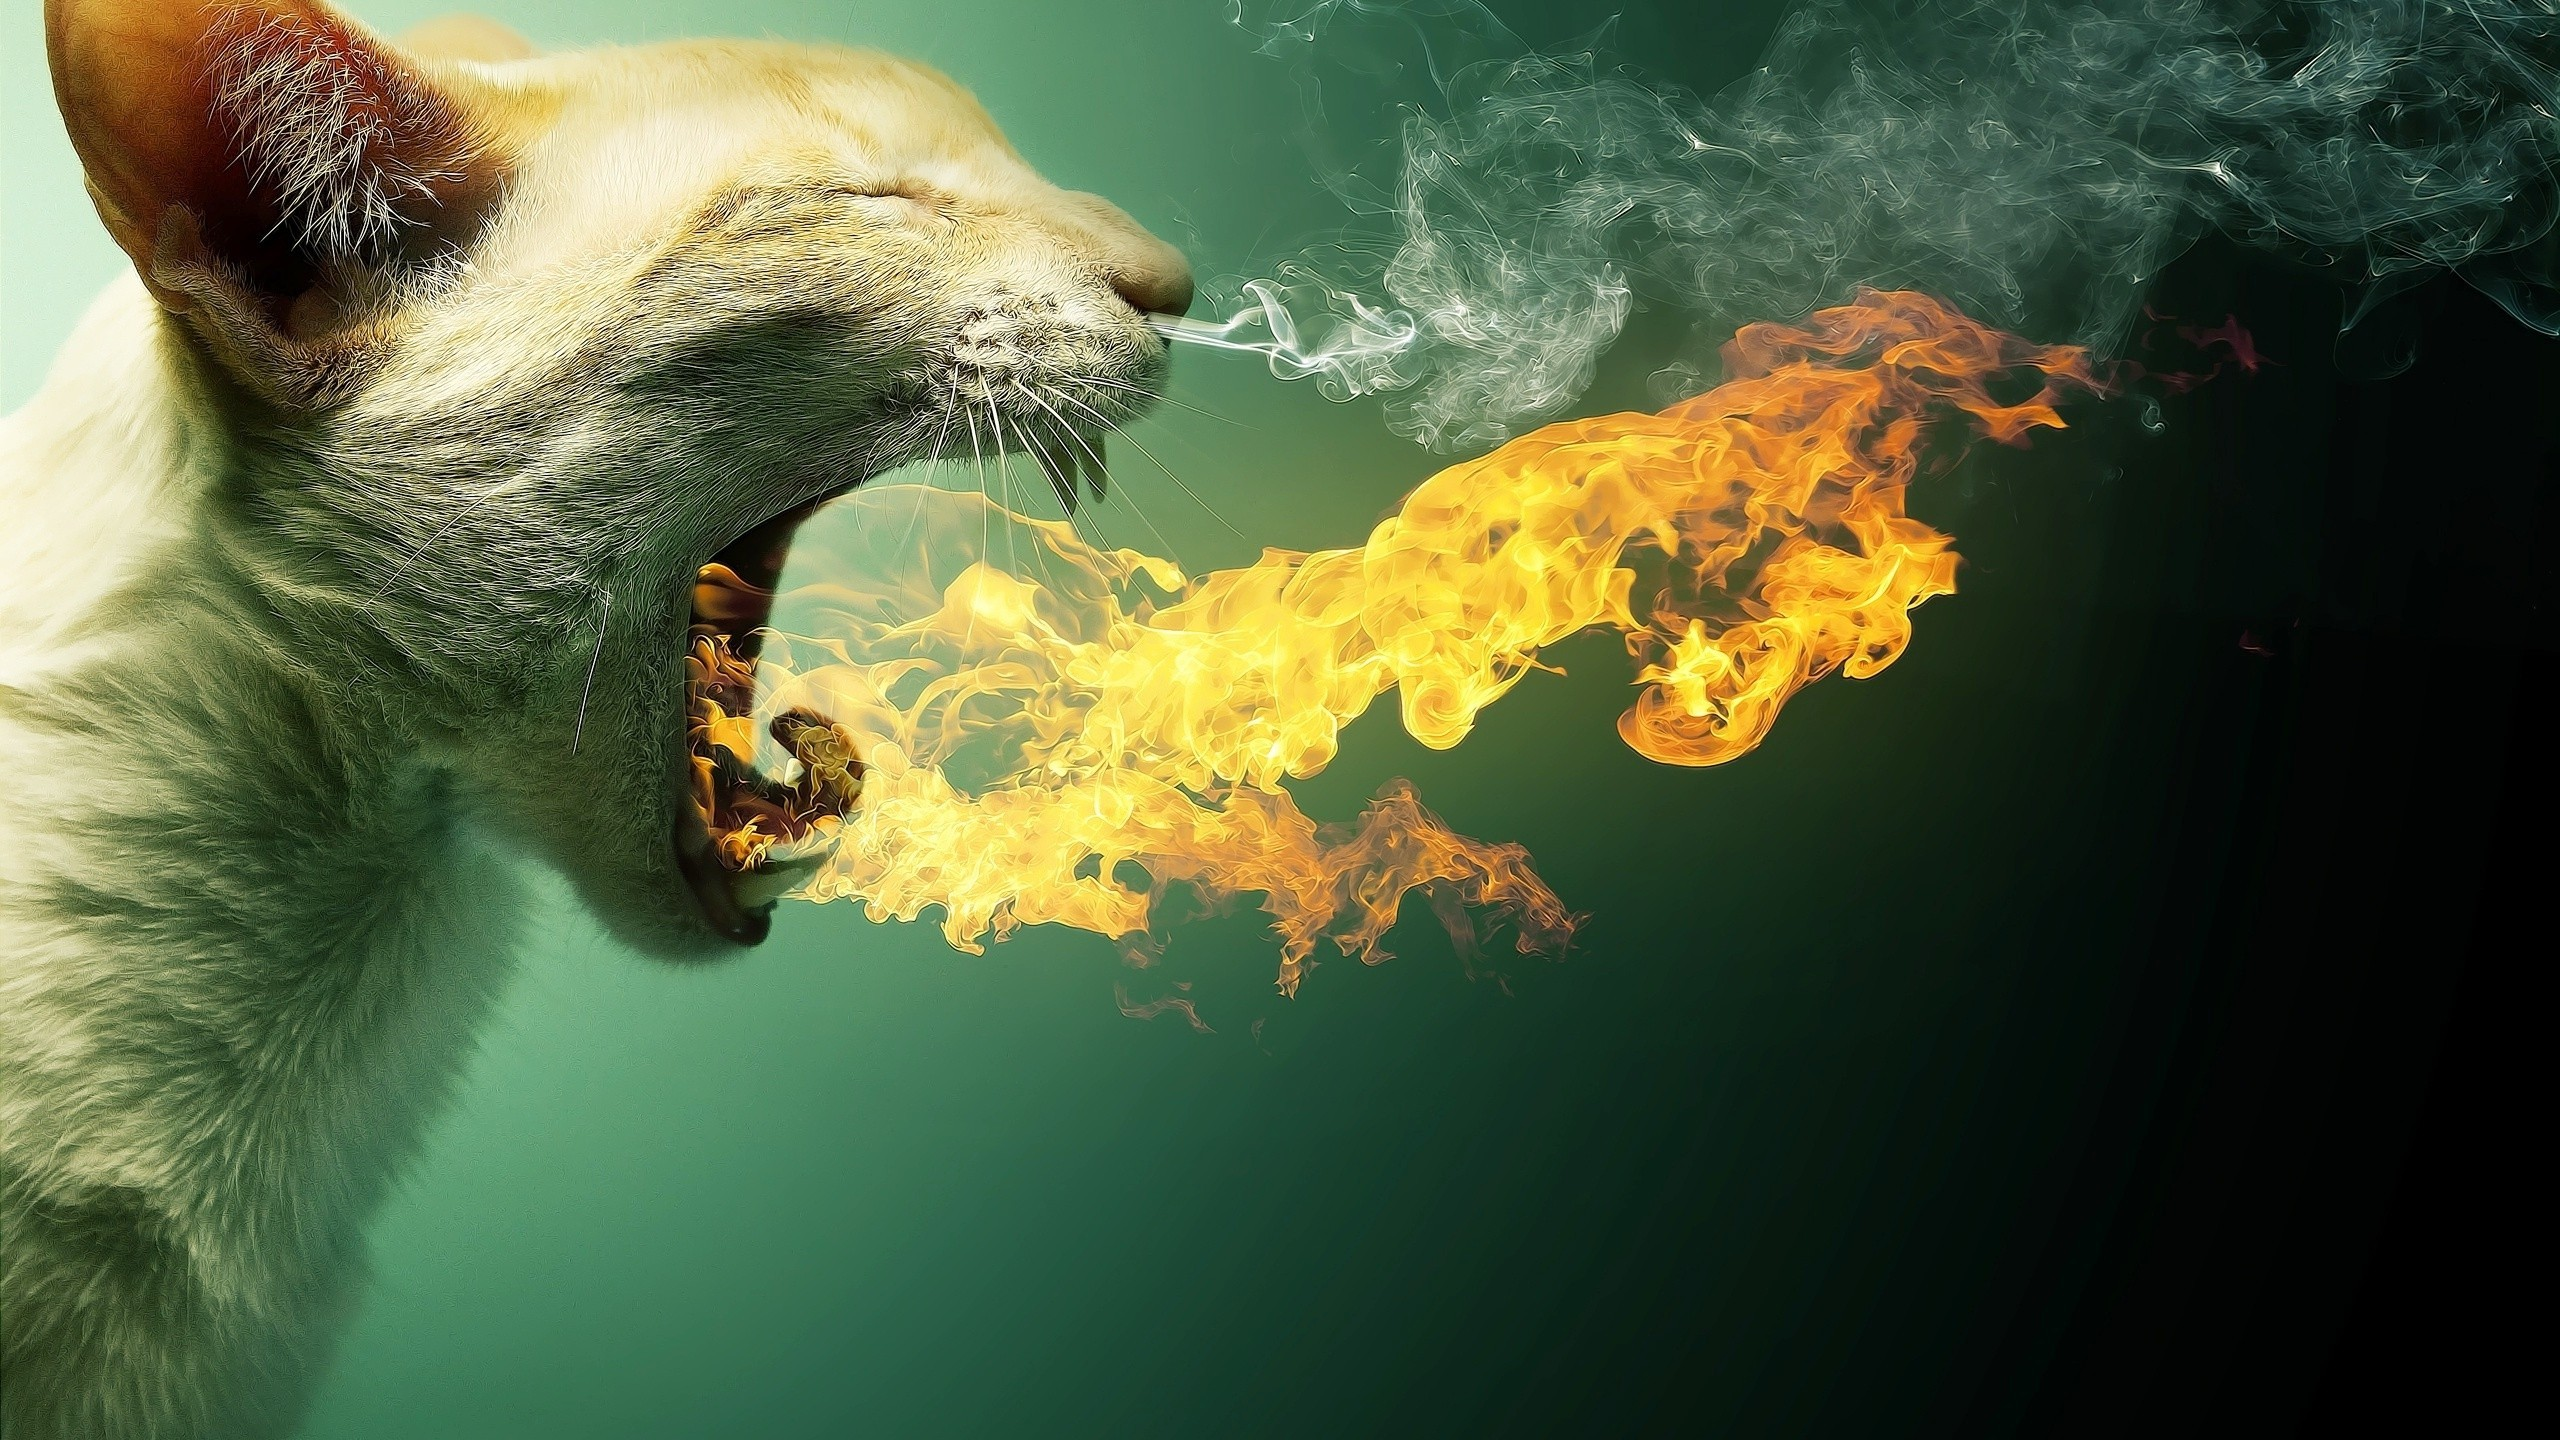 2560x1440 Download Flaming Cat Wide Wallpaper HD #1v20bw  px 864.26 KB  Abstract Animals